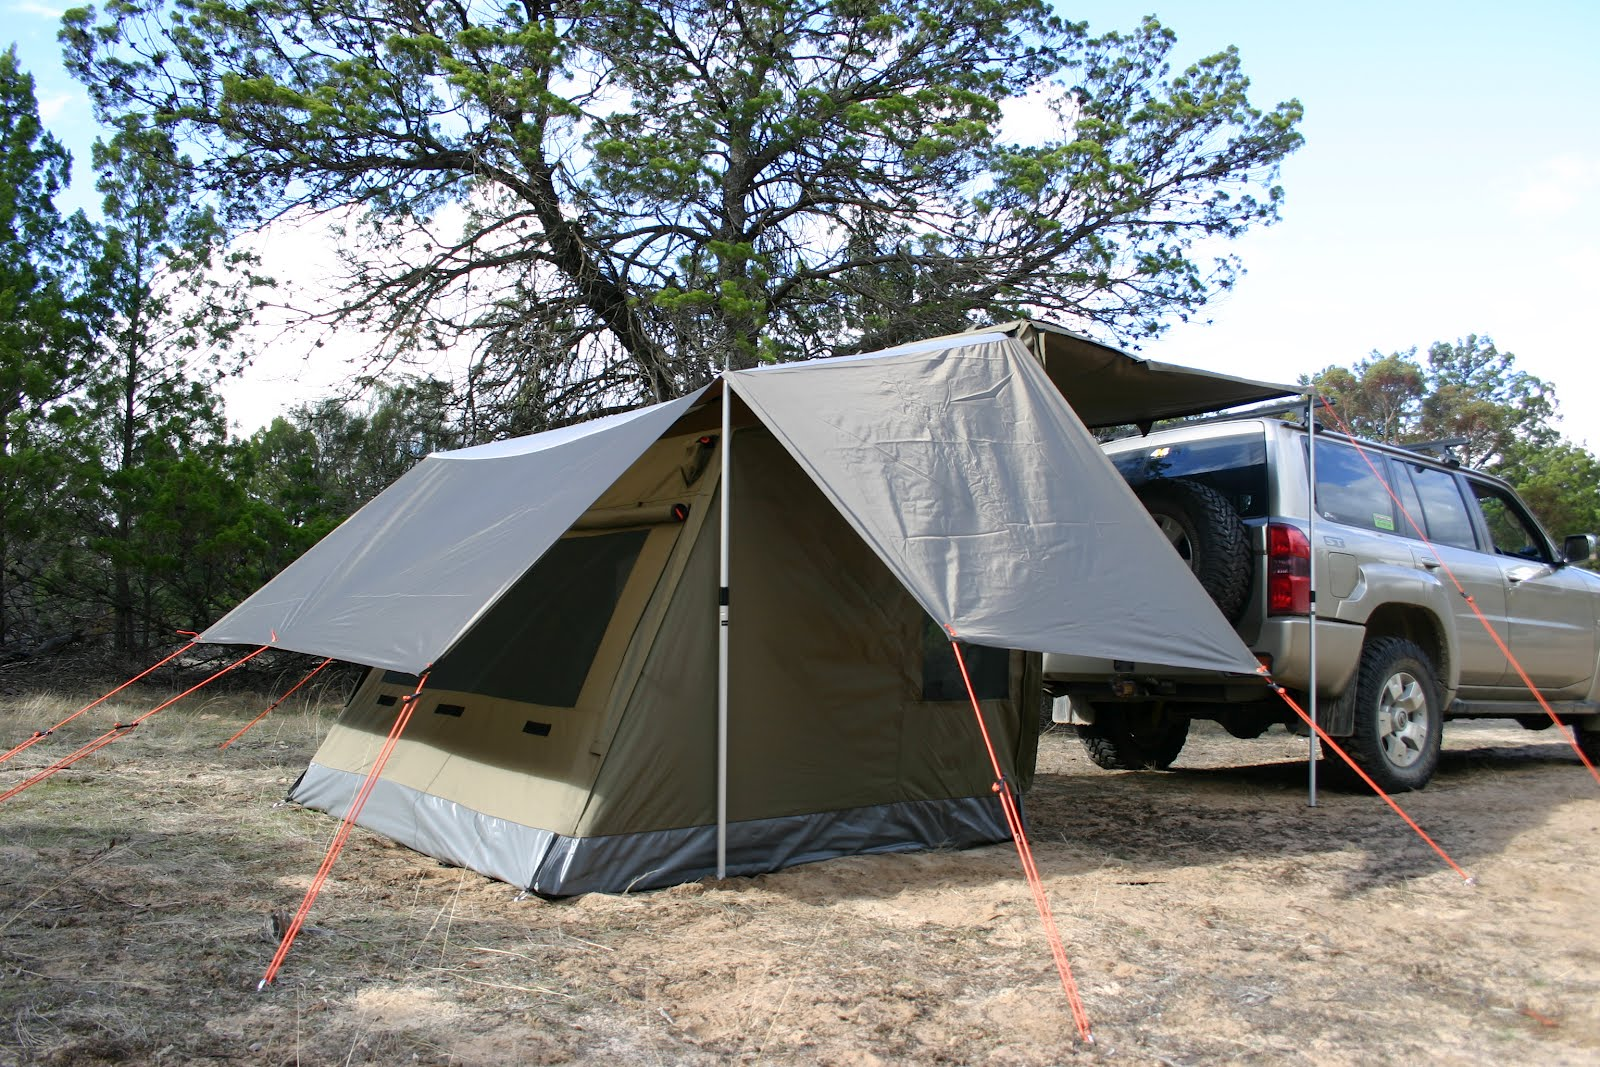 If your tent is equipped with window awnings this is a good feature to maintain ventilation even during rain. & Family Tent Camping : Tips for Keeping Cool in your Tent